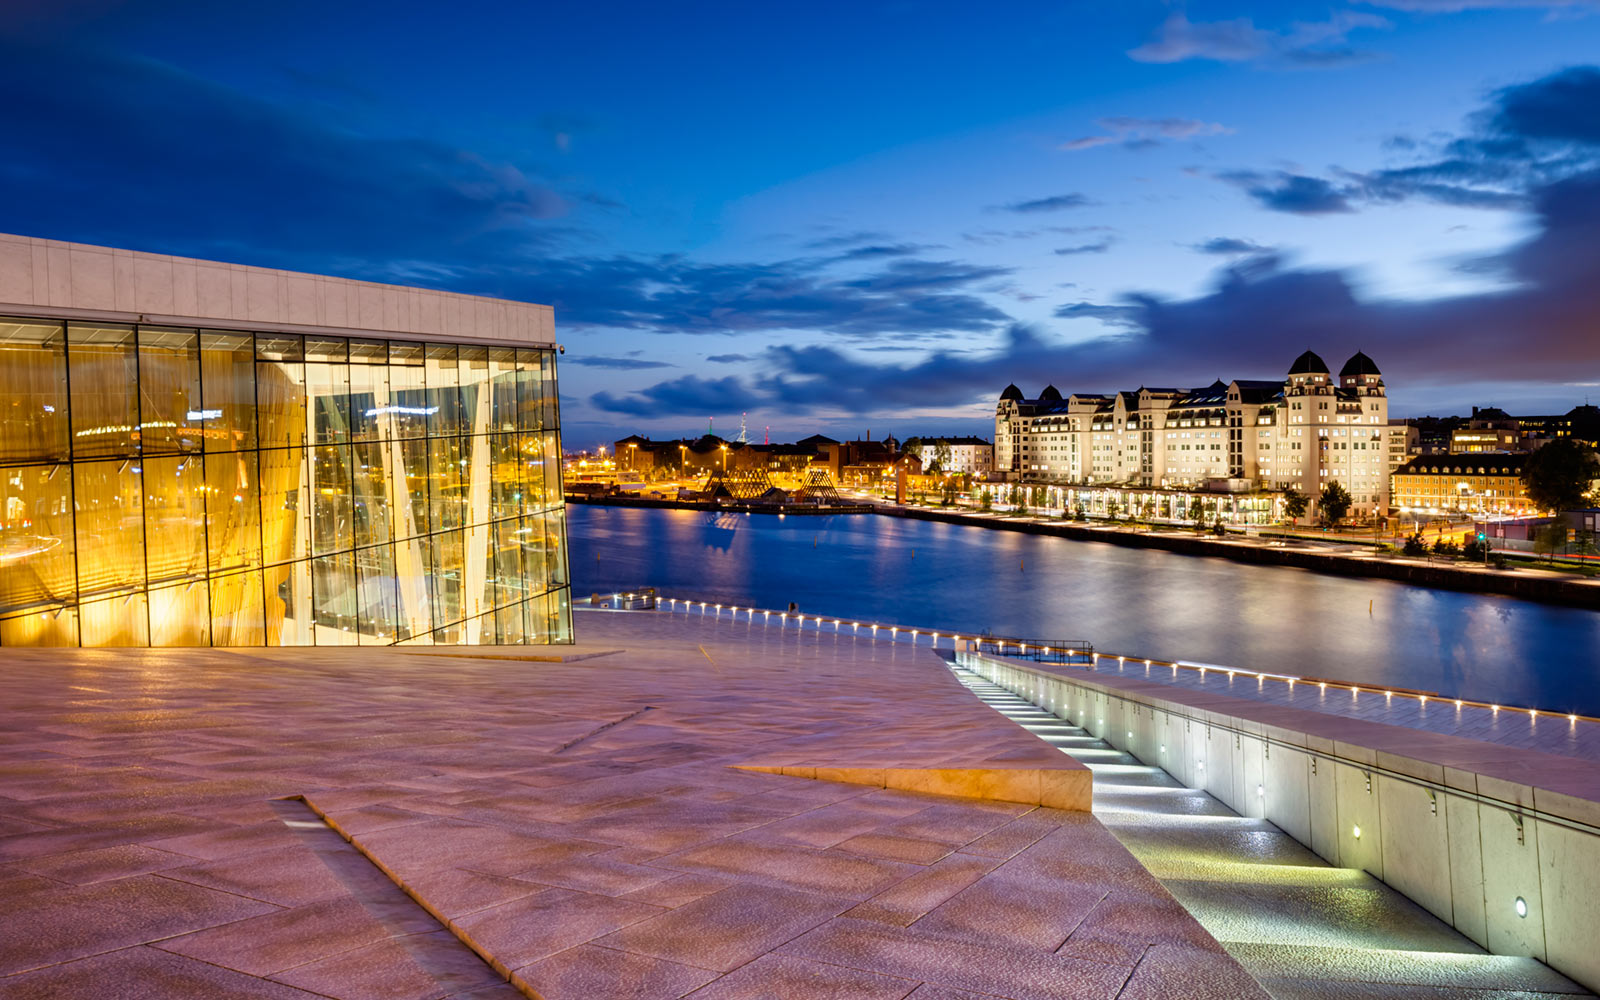 Oslo Opera House, Oslo, Norway